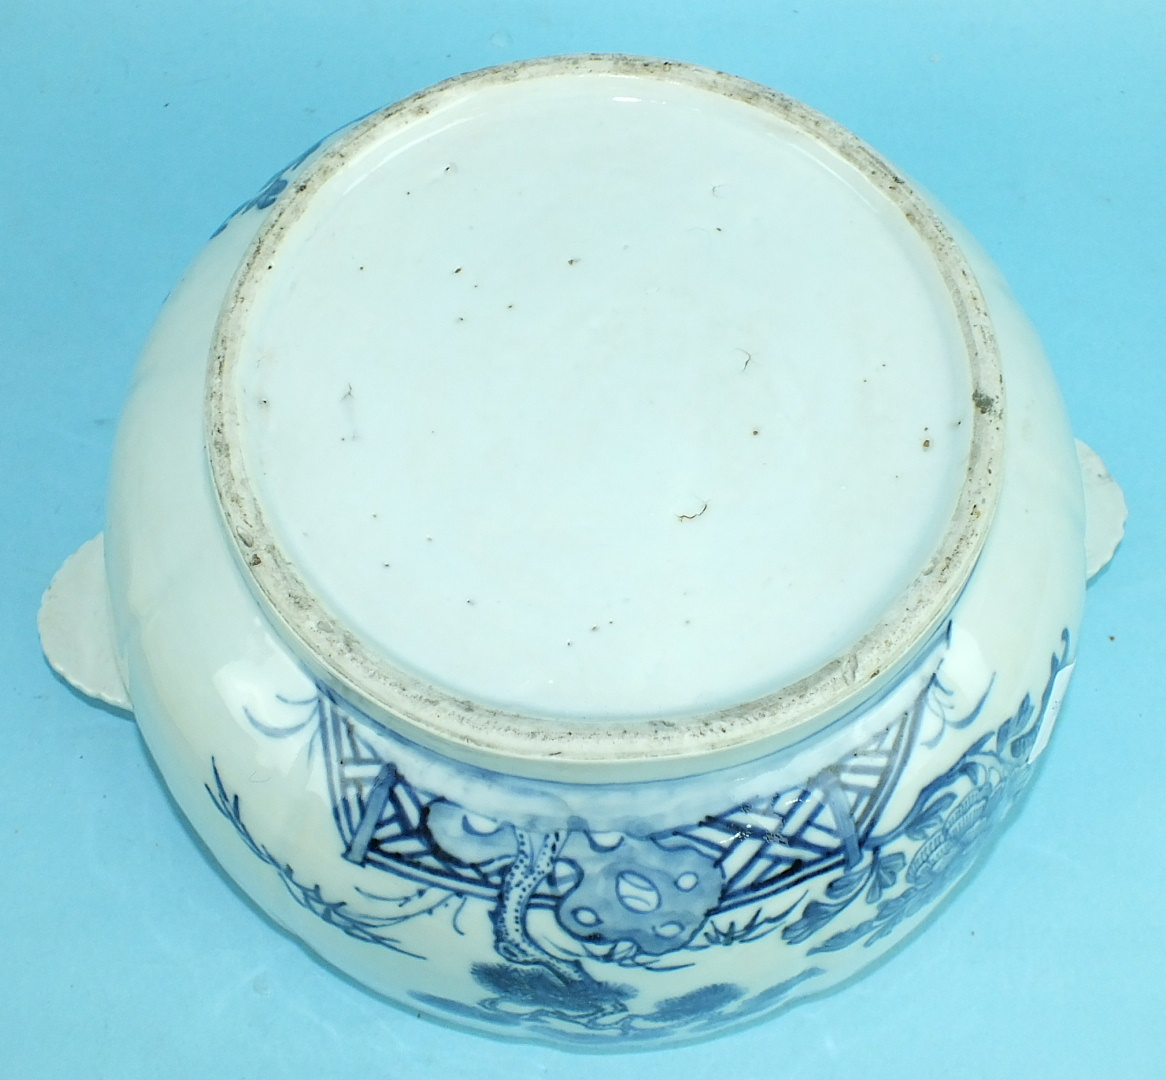 An 18th century Chinese porcelain circular tureen and cover decorated with landscapes, with shell - Image 4 of 4